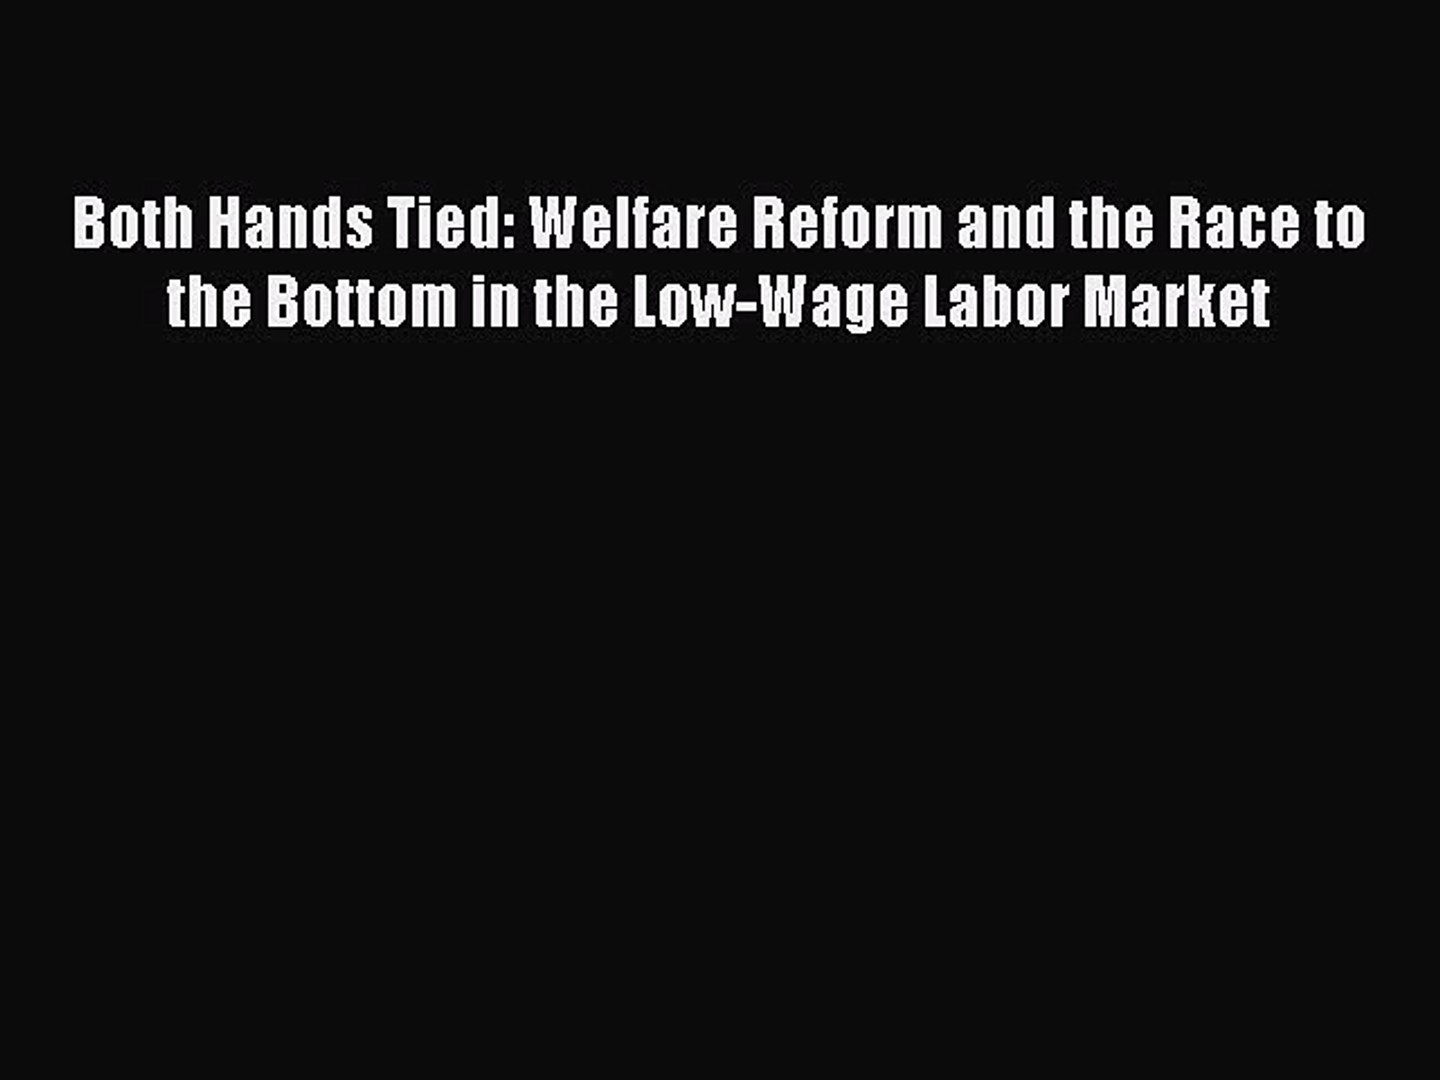 Read Both Hands Tied: Welfare Reform and the Race to the Bottom in the Low-Wage Labor Market